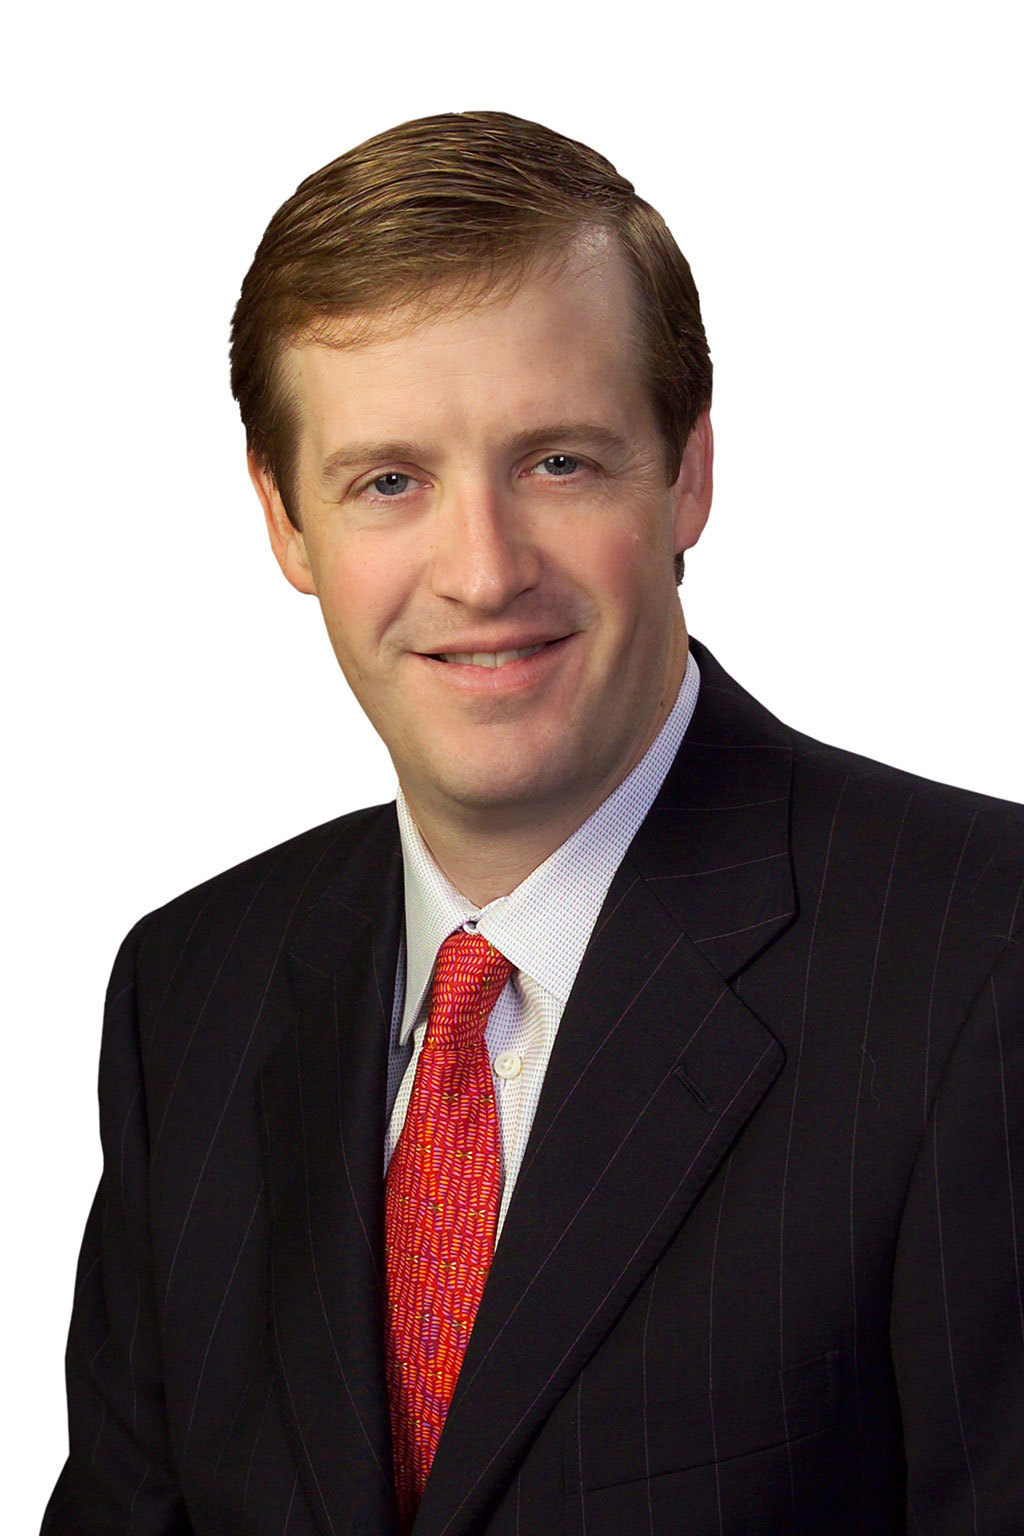 Daryl L. Lansdale, Jr., US Managing Partner-elect, Norton Rose Fulbright (Photo: Business Wire)